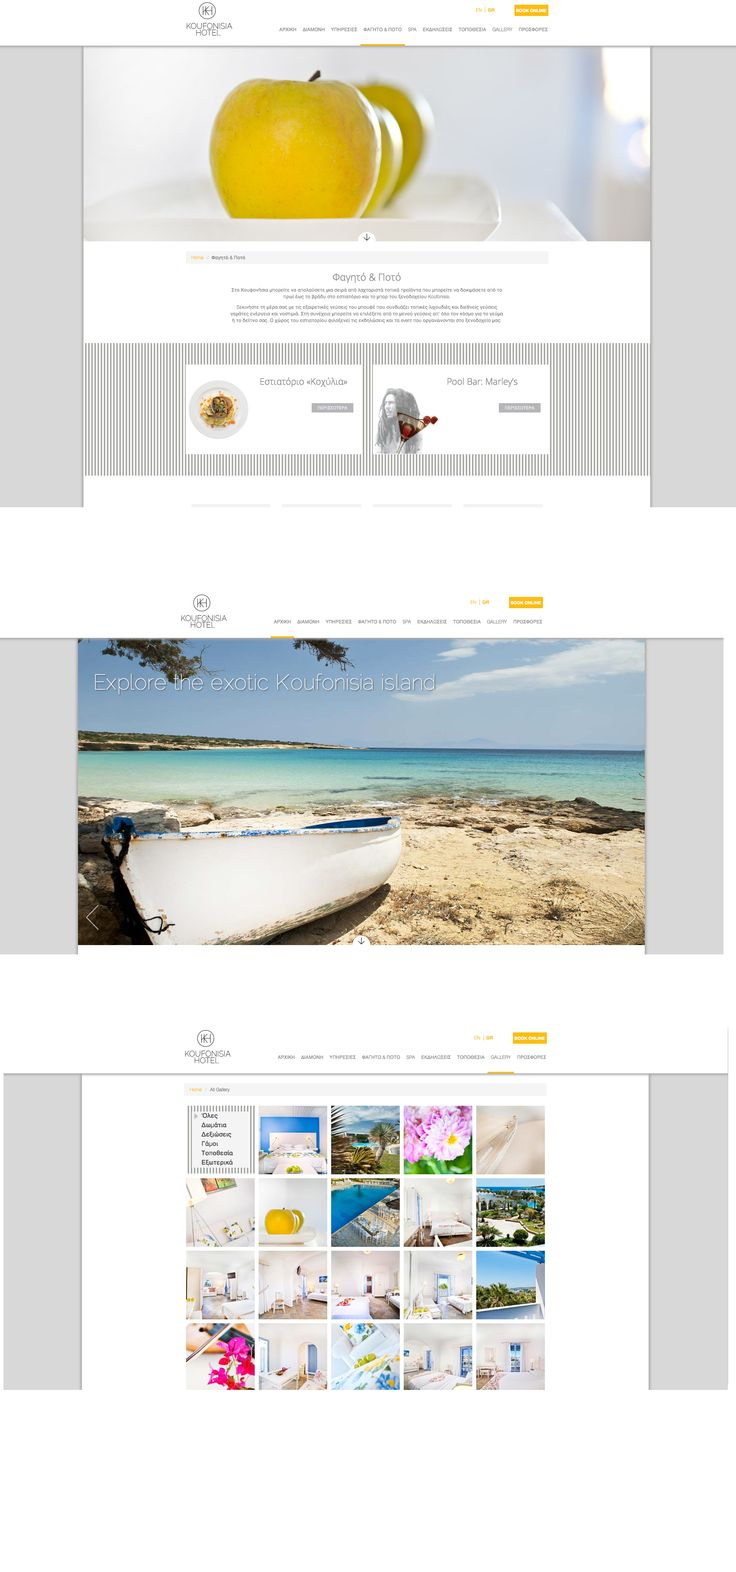 The Hotel Koufonissia website by F-Design at http://www.hotelkoufonisia.gr/